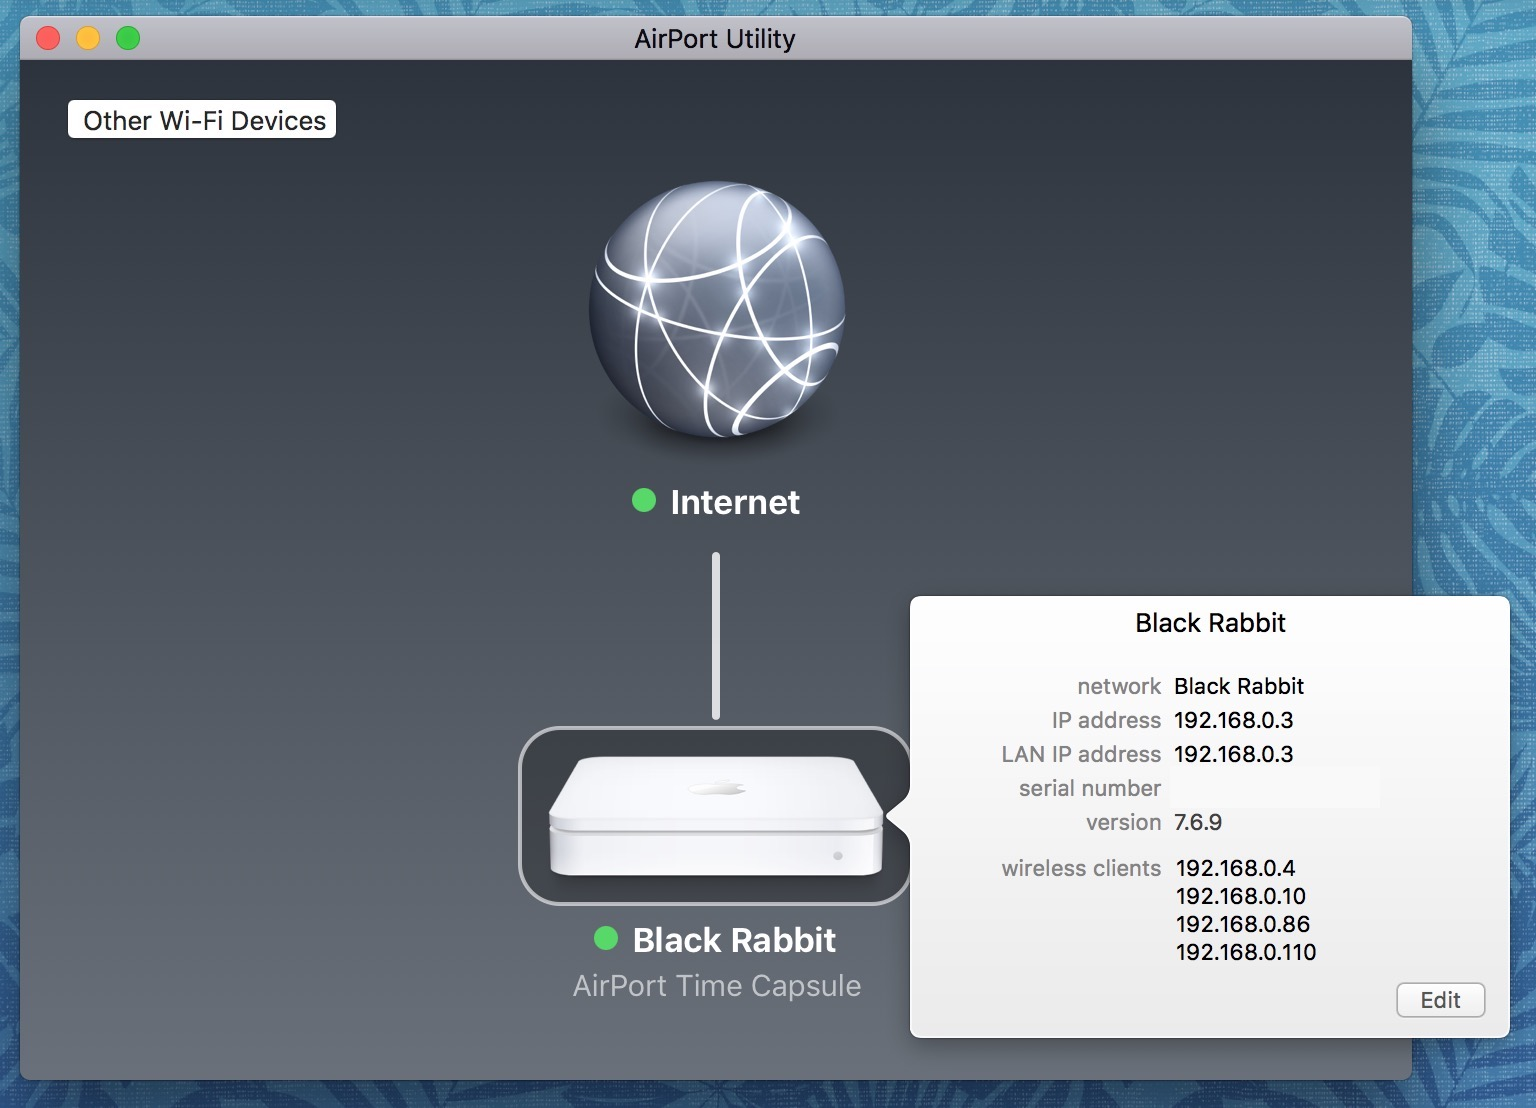 Apple AirPort Base Station Info in AirPort Utility app on the Mac